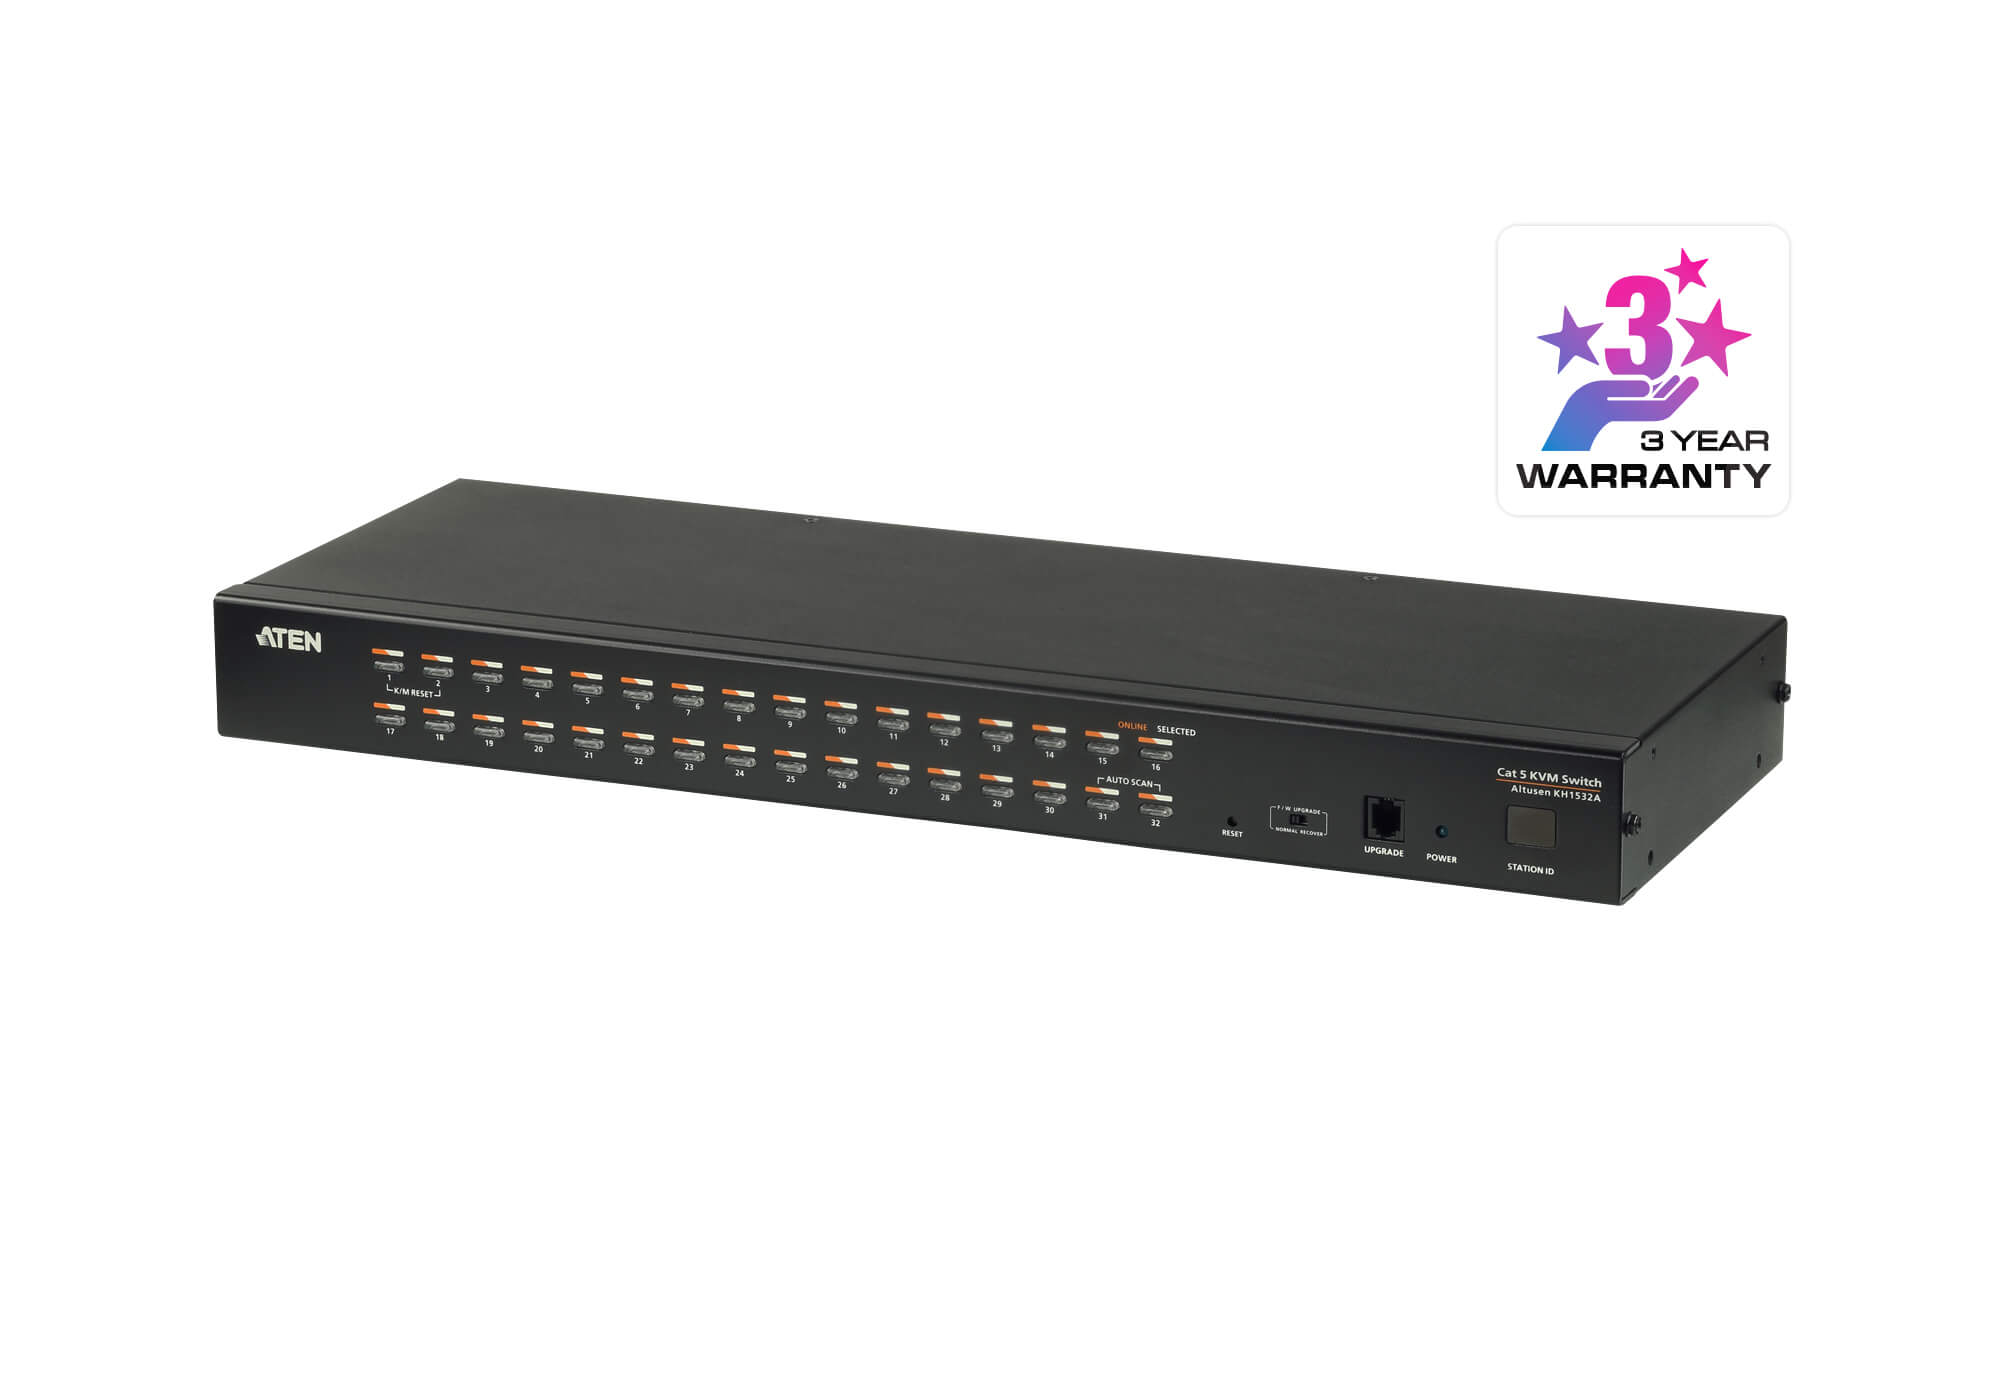 32-Port Multi-Interface (DisplayPort, HDMI, DVI, VGA) Cat 5 KVM Switch-2